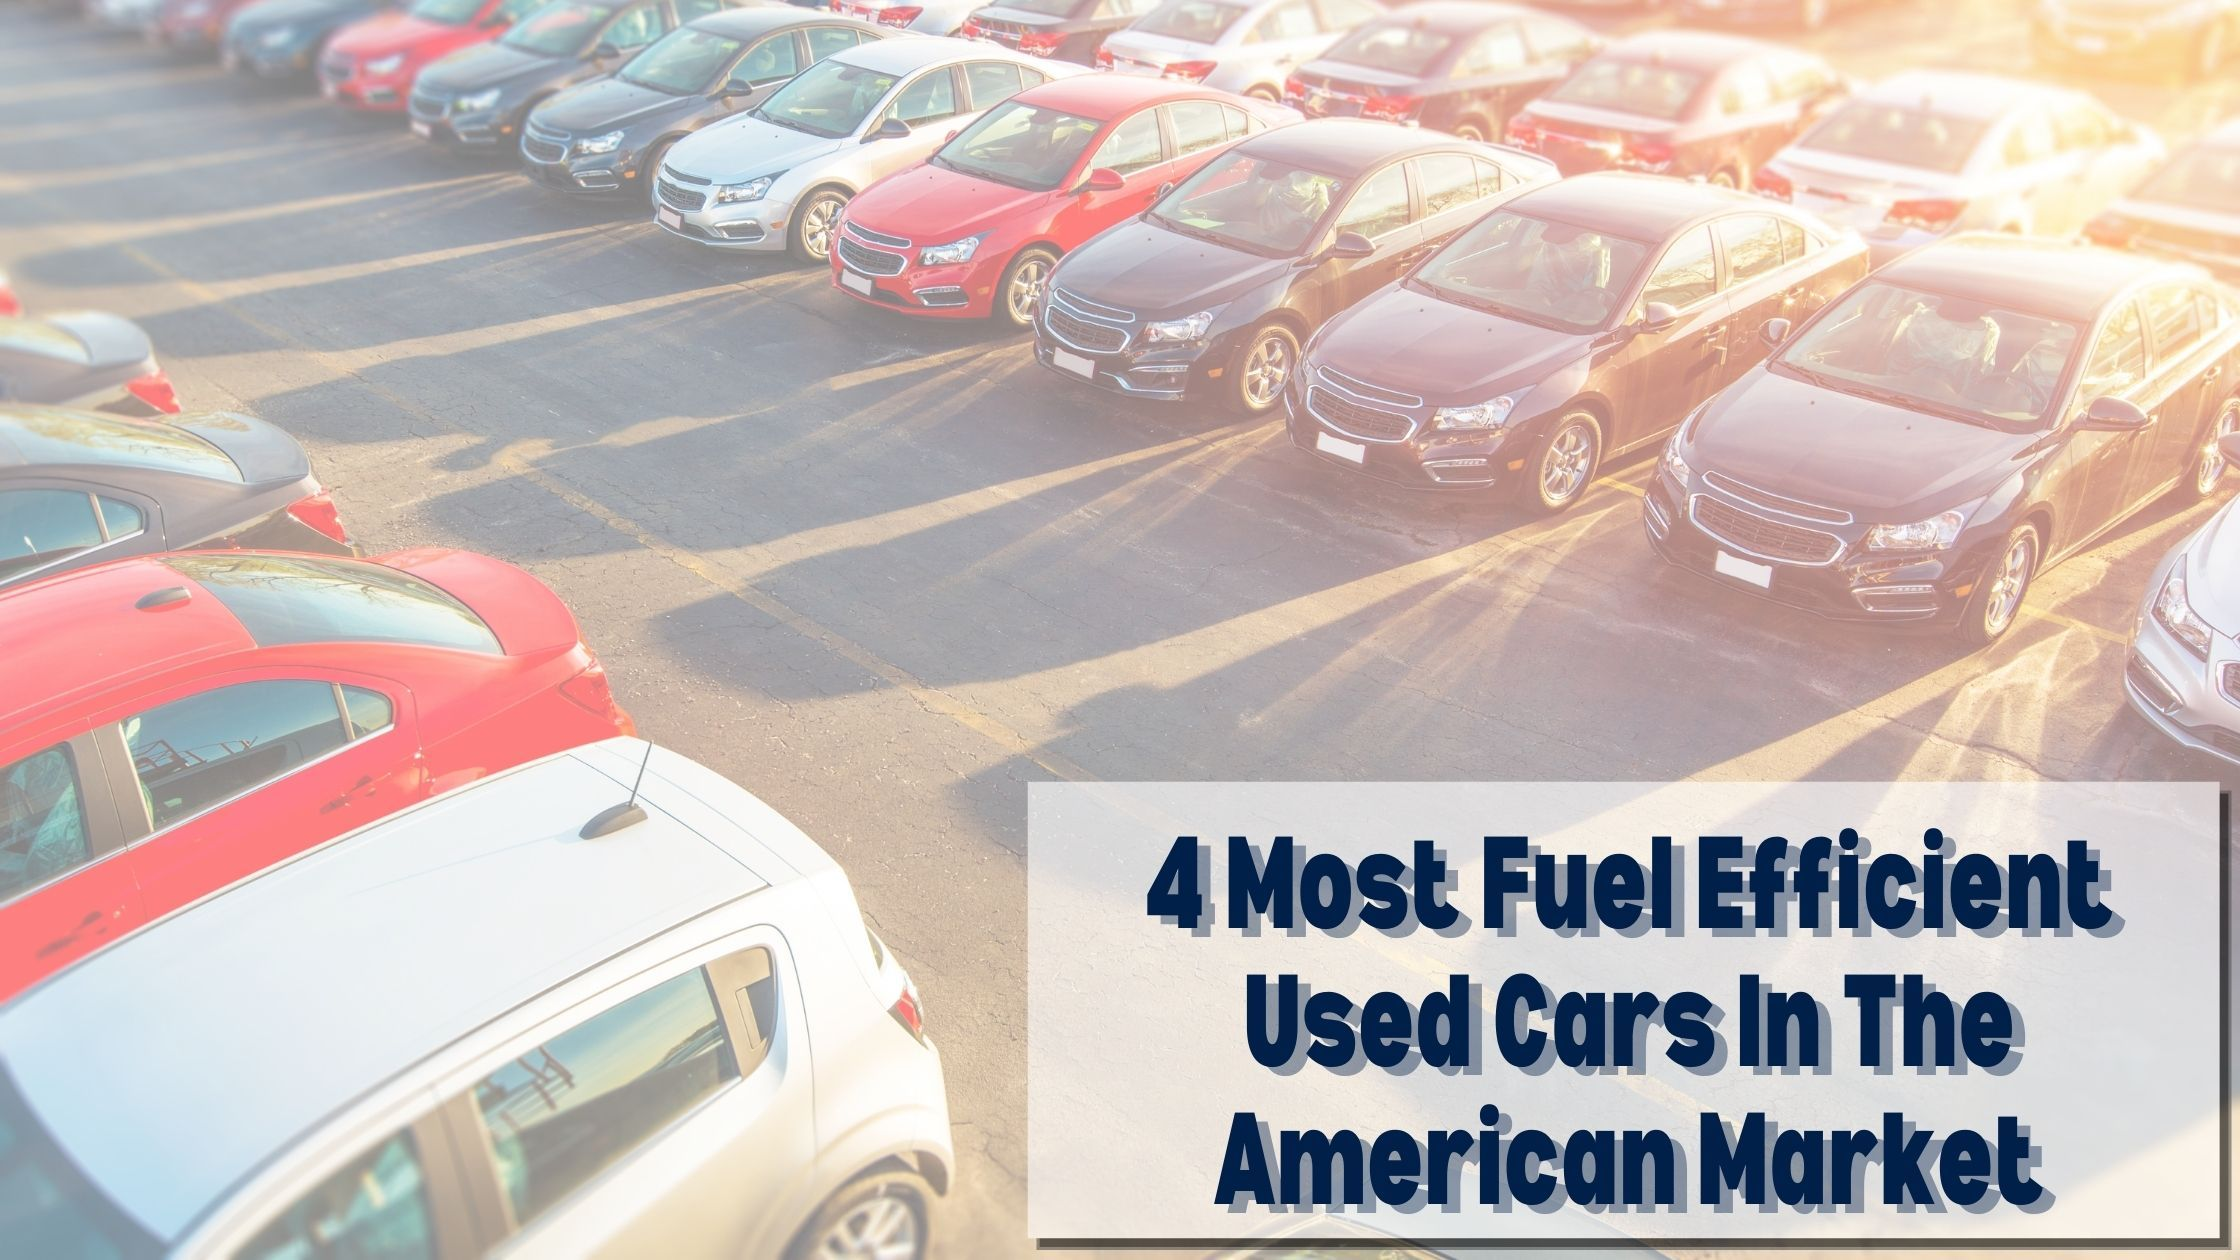 4 Most Fuel Efficient Used Cars In The American Market Fuel Efficient Fuel Efficient Cars Used Cars